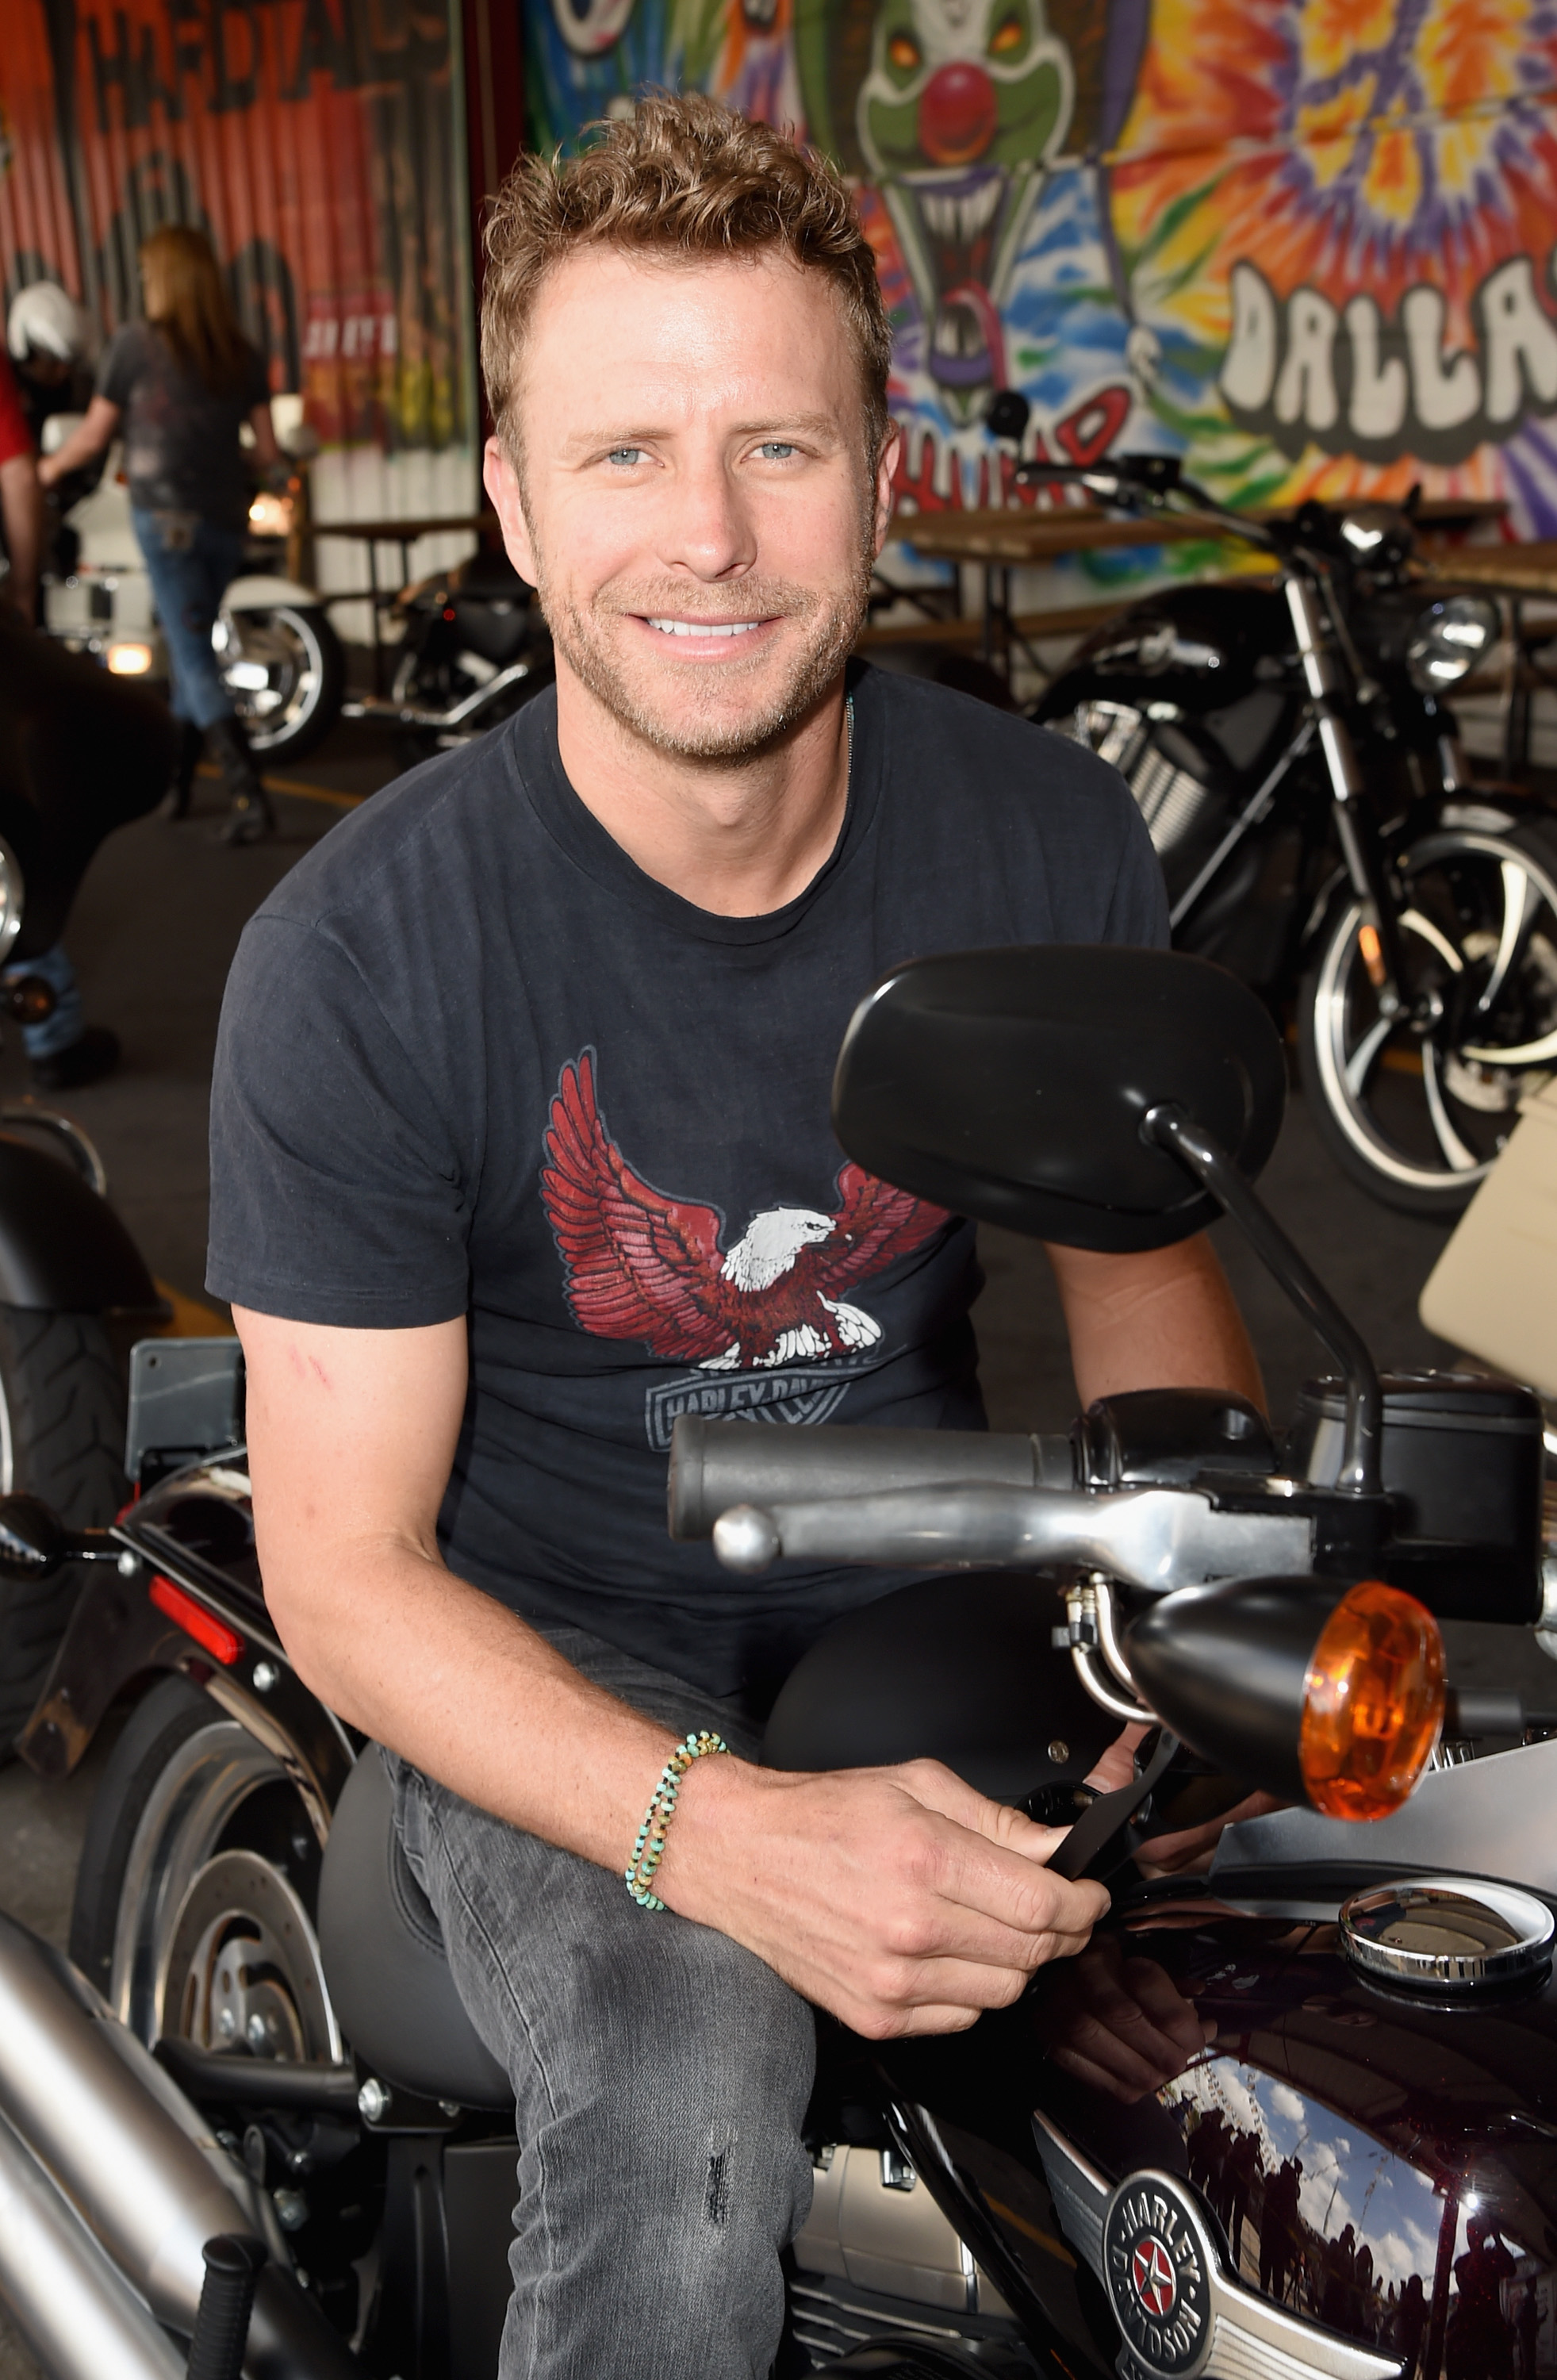 Dierks Bentley Enlists All-Star Lineup for Motorcycle Ride and Concert